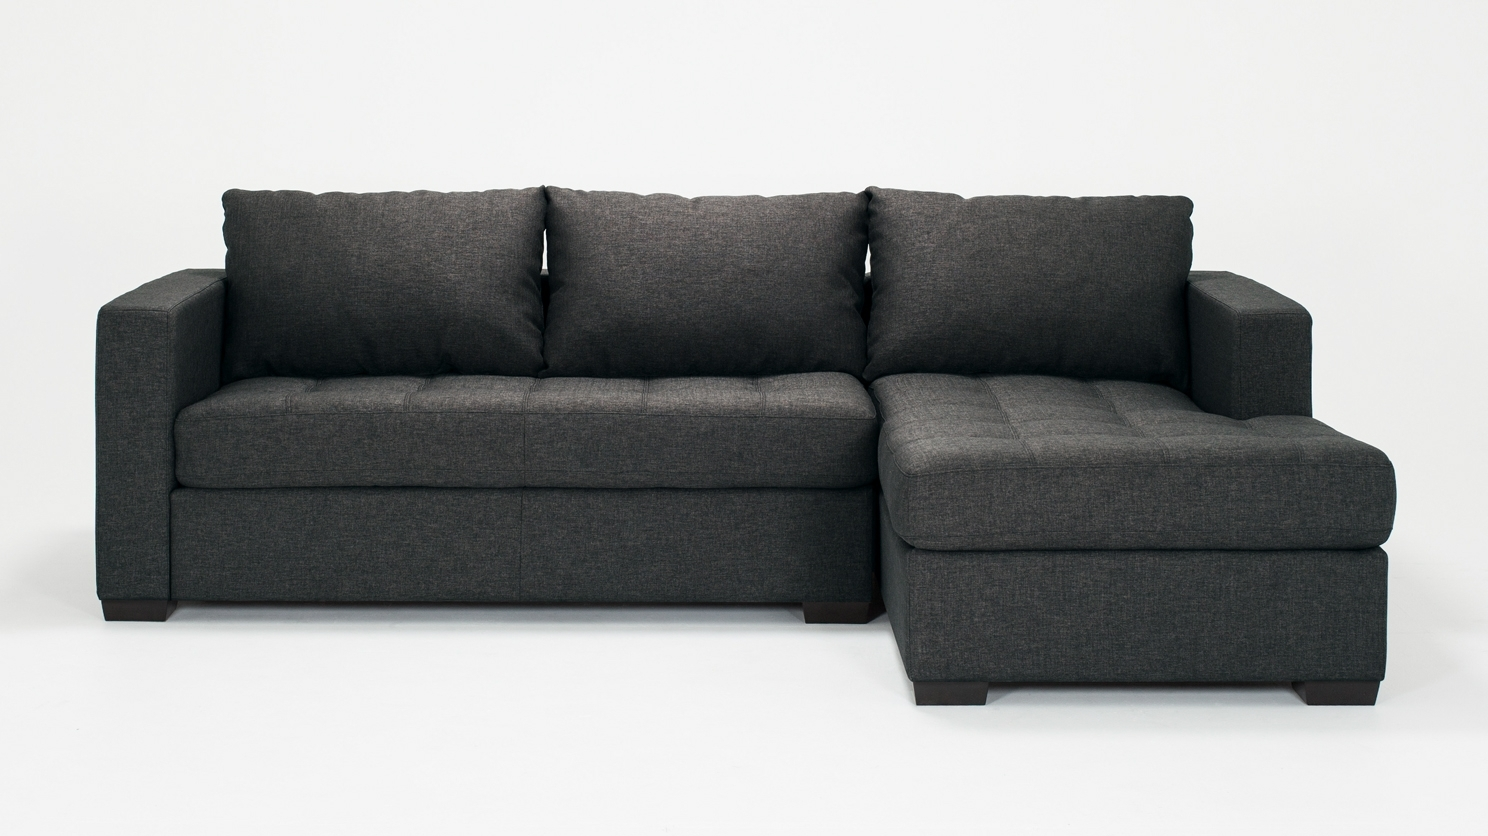 Porter 2 Piece Sectional Sofa With Chaise – Fabric (View 12 of 15)